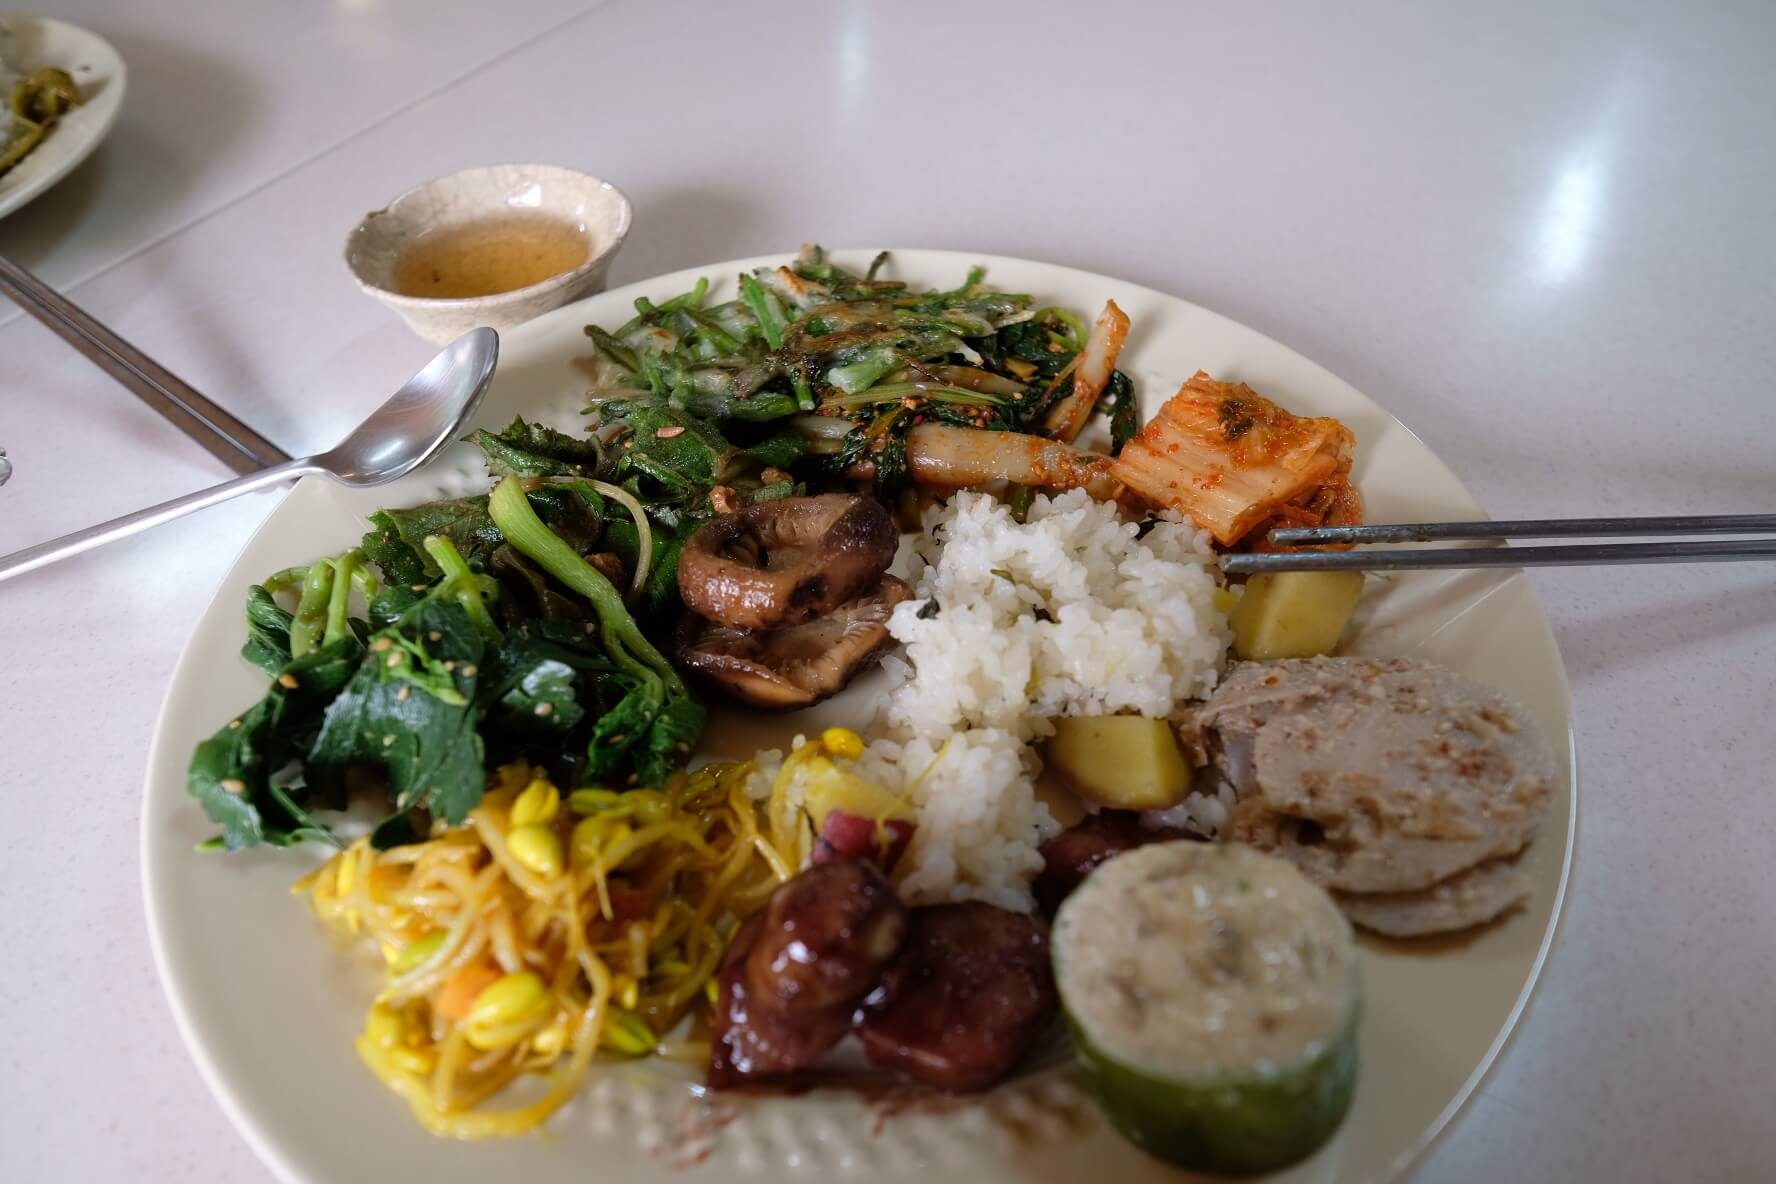 Vegetarian Dishes to Try in South Korea